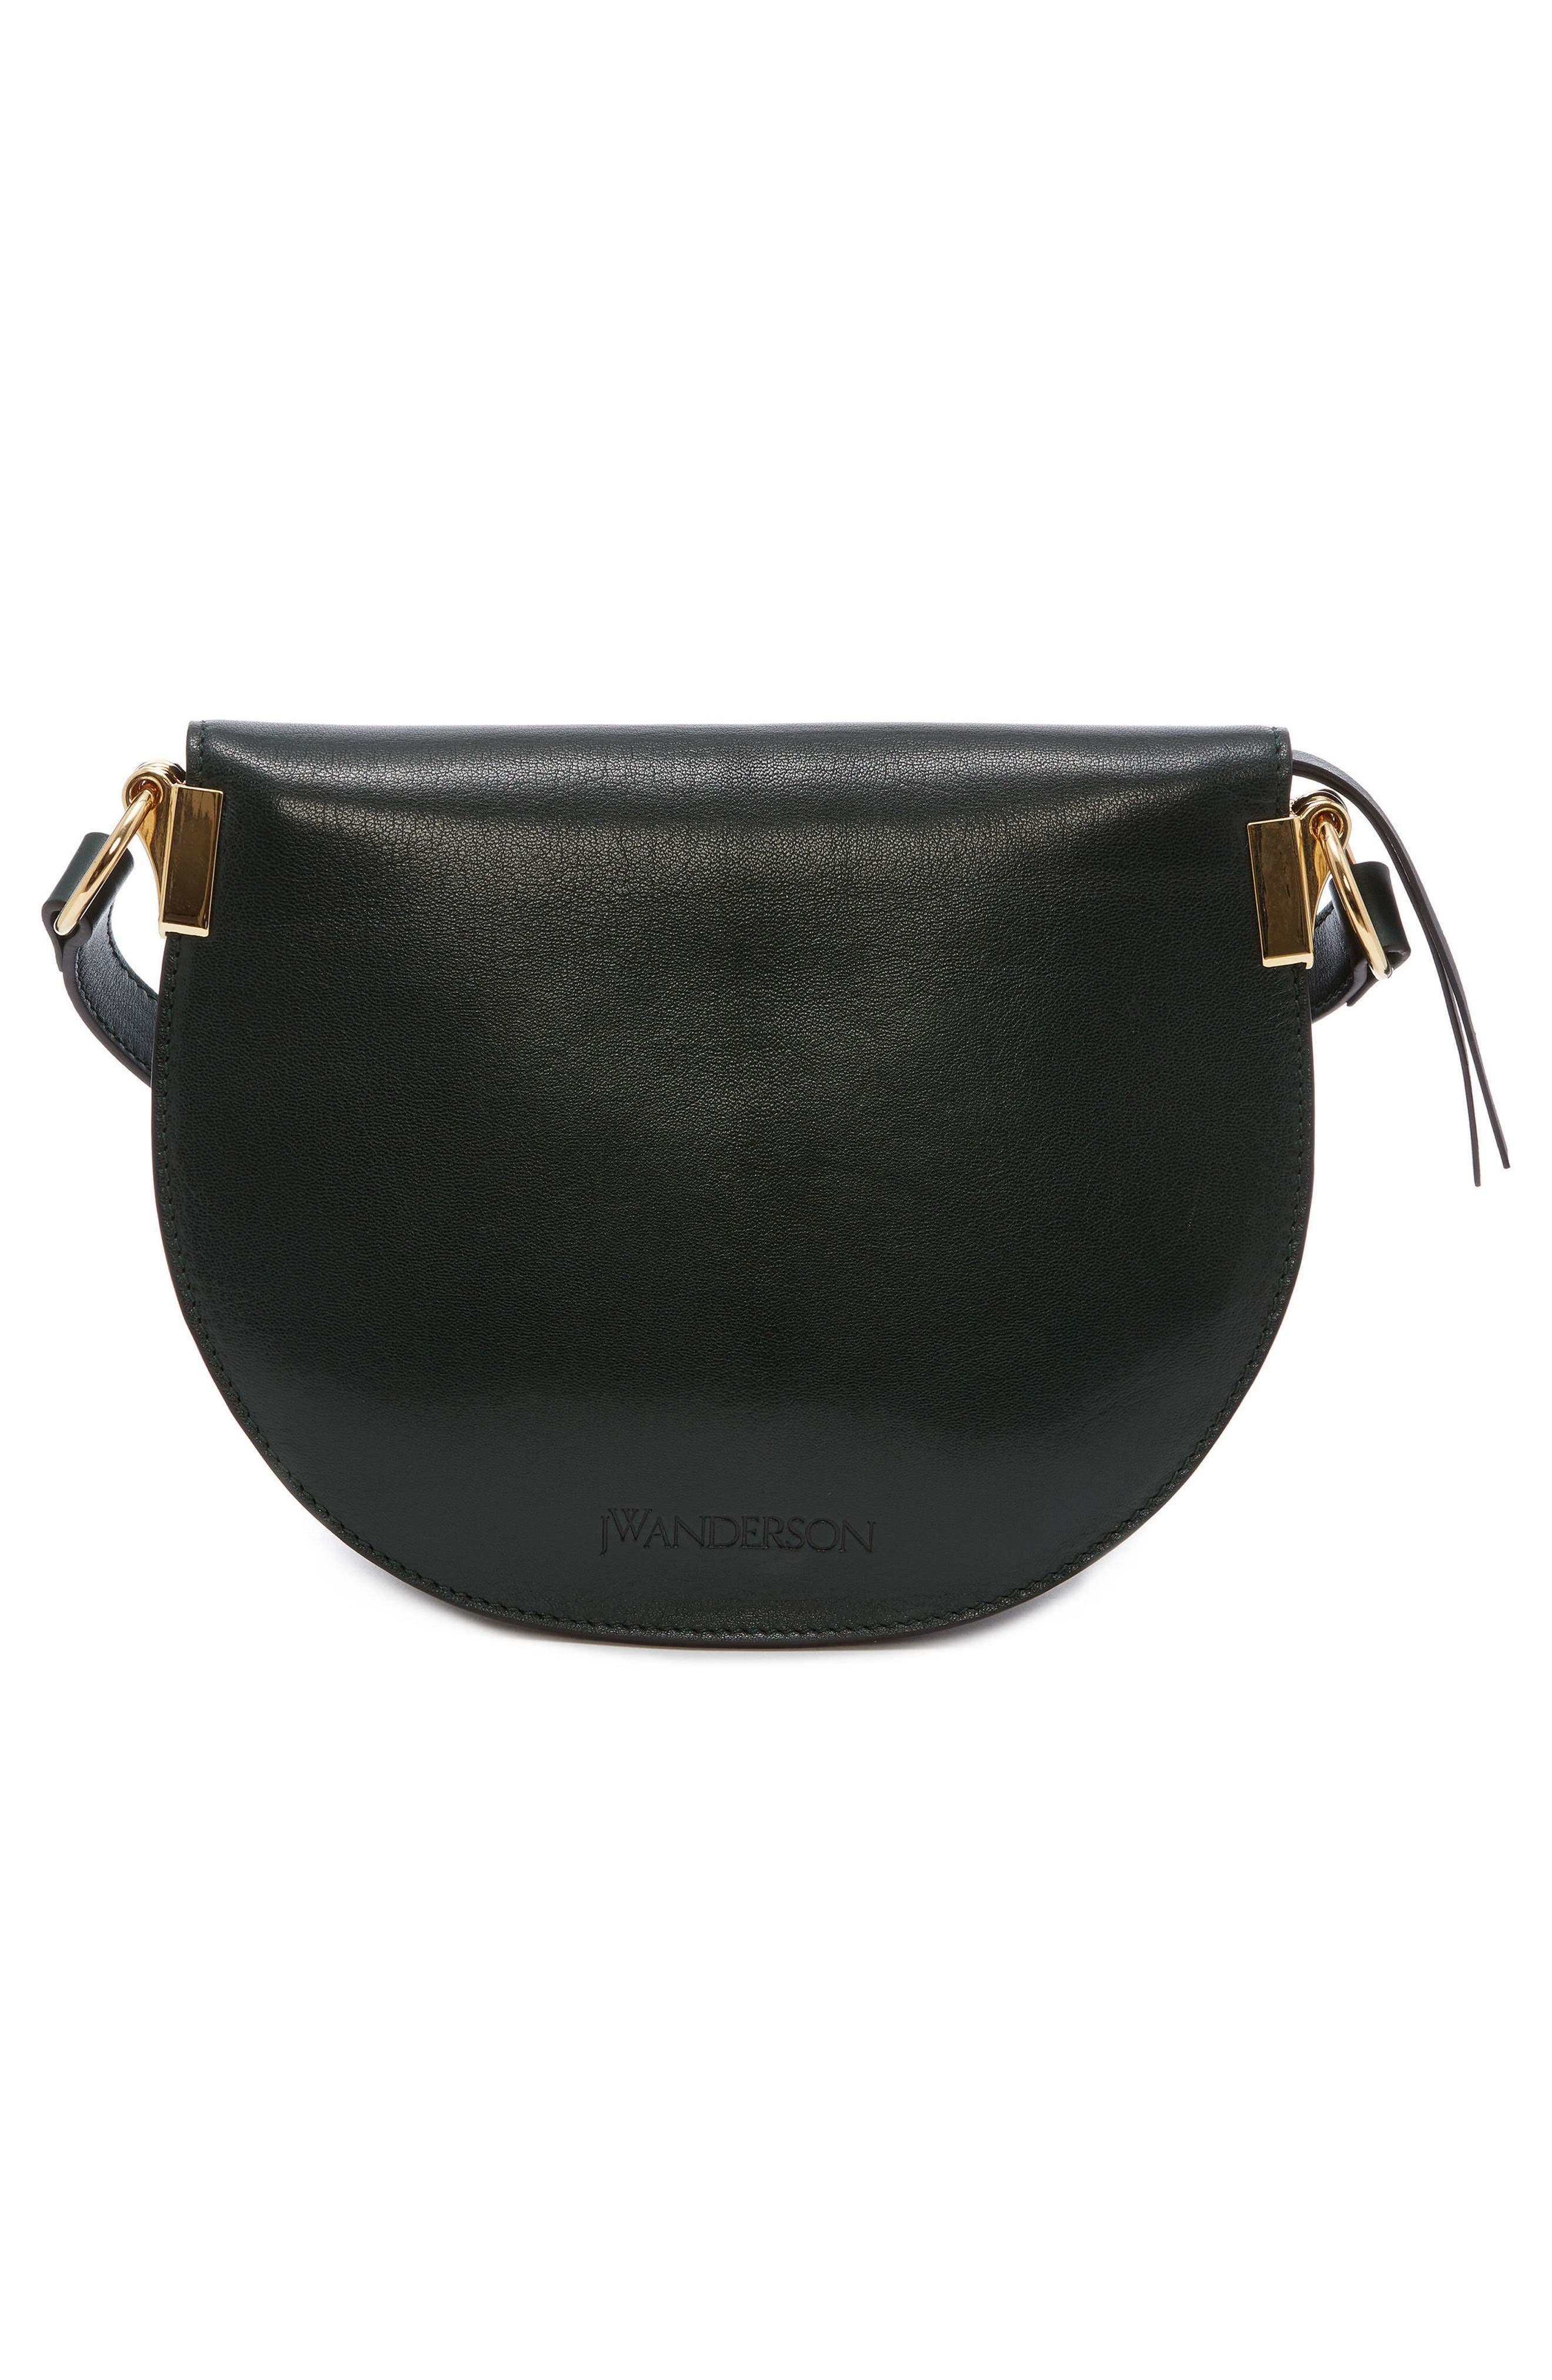 J.W.ANDERSON Latch Crossbody Bag,                             Alternate thumbnail 2, color,                             Forest Green